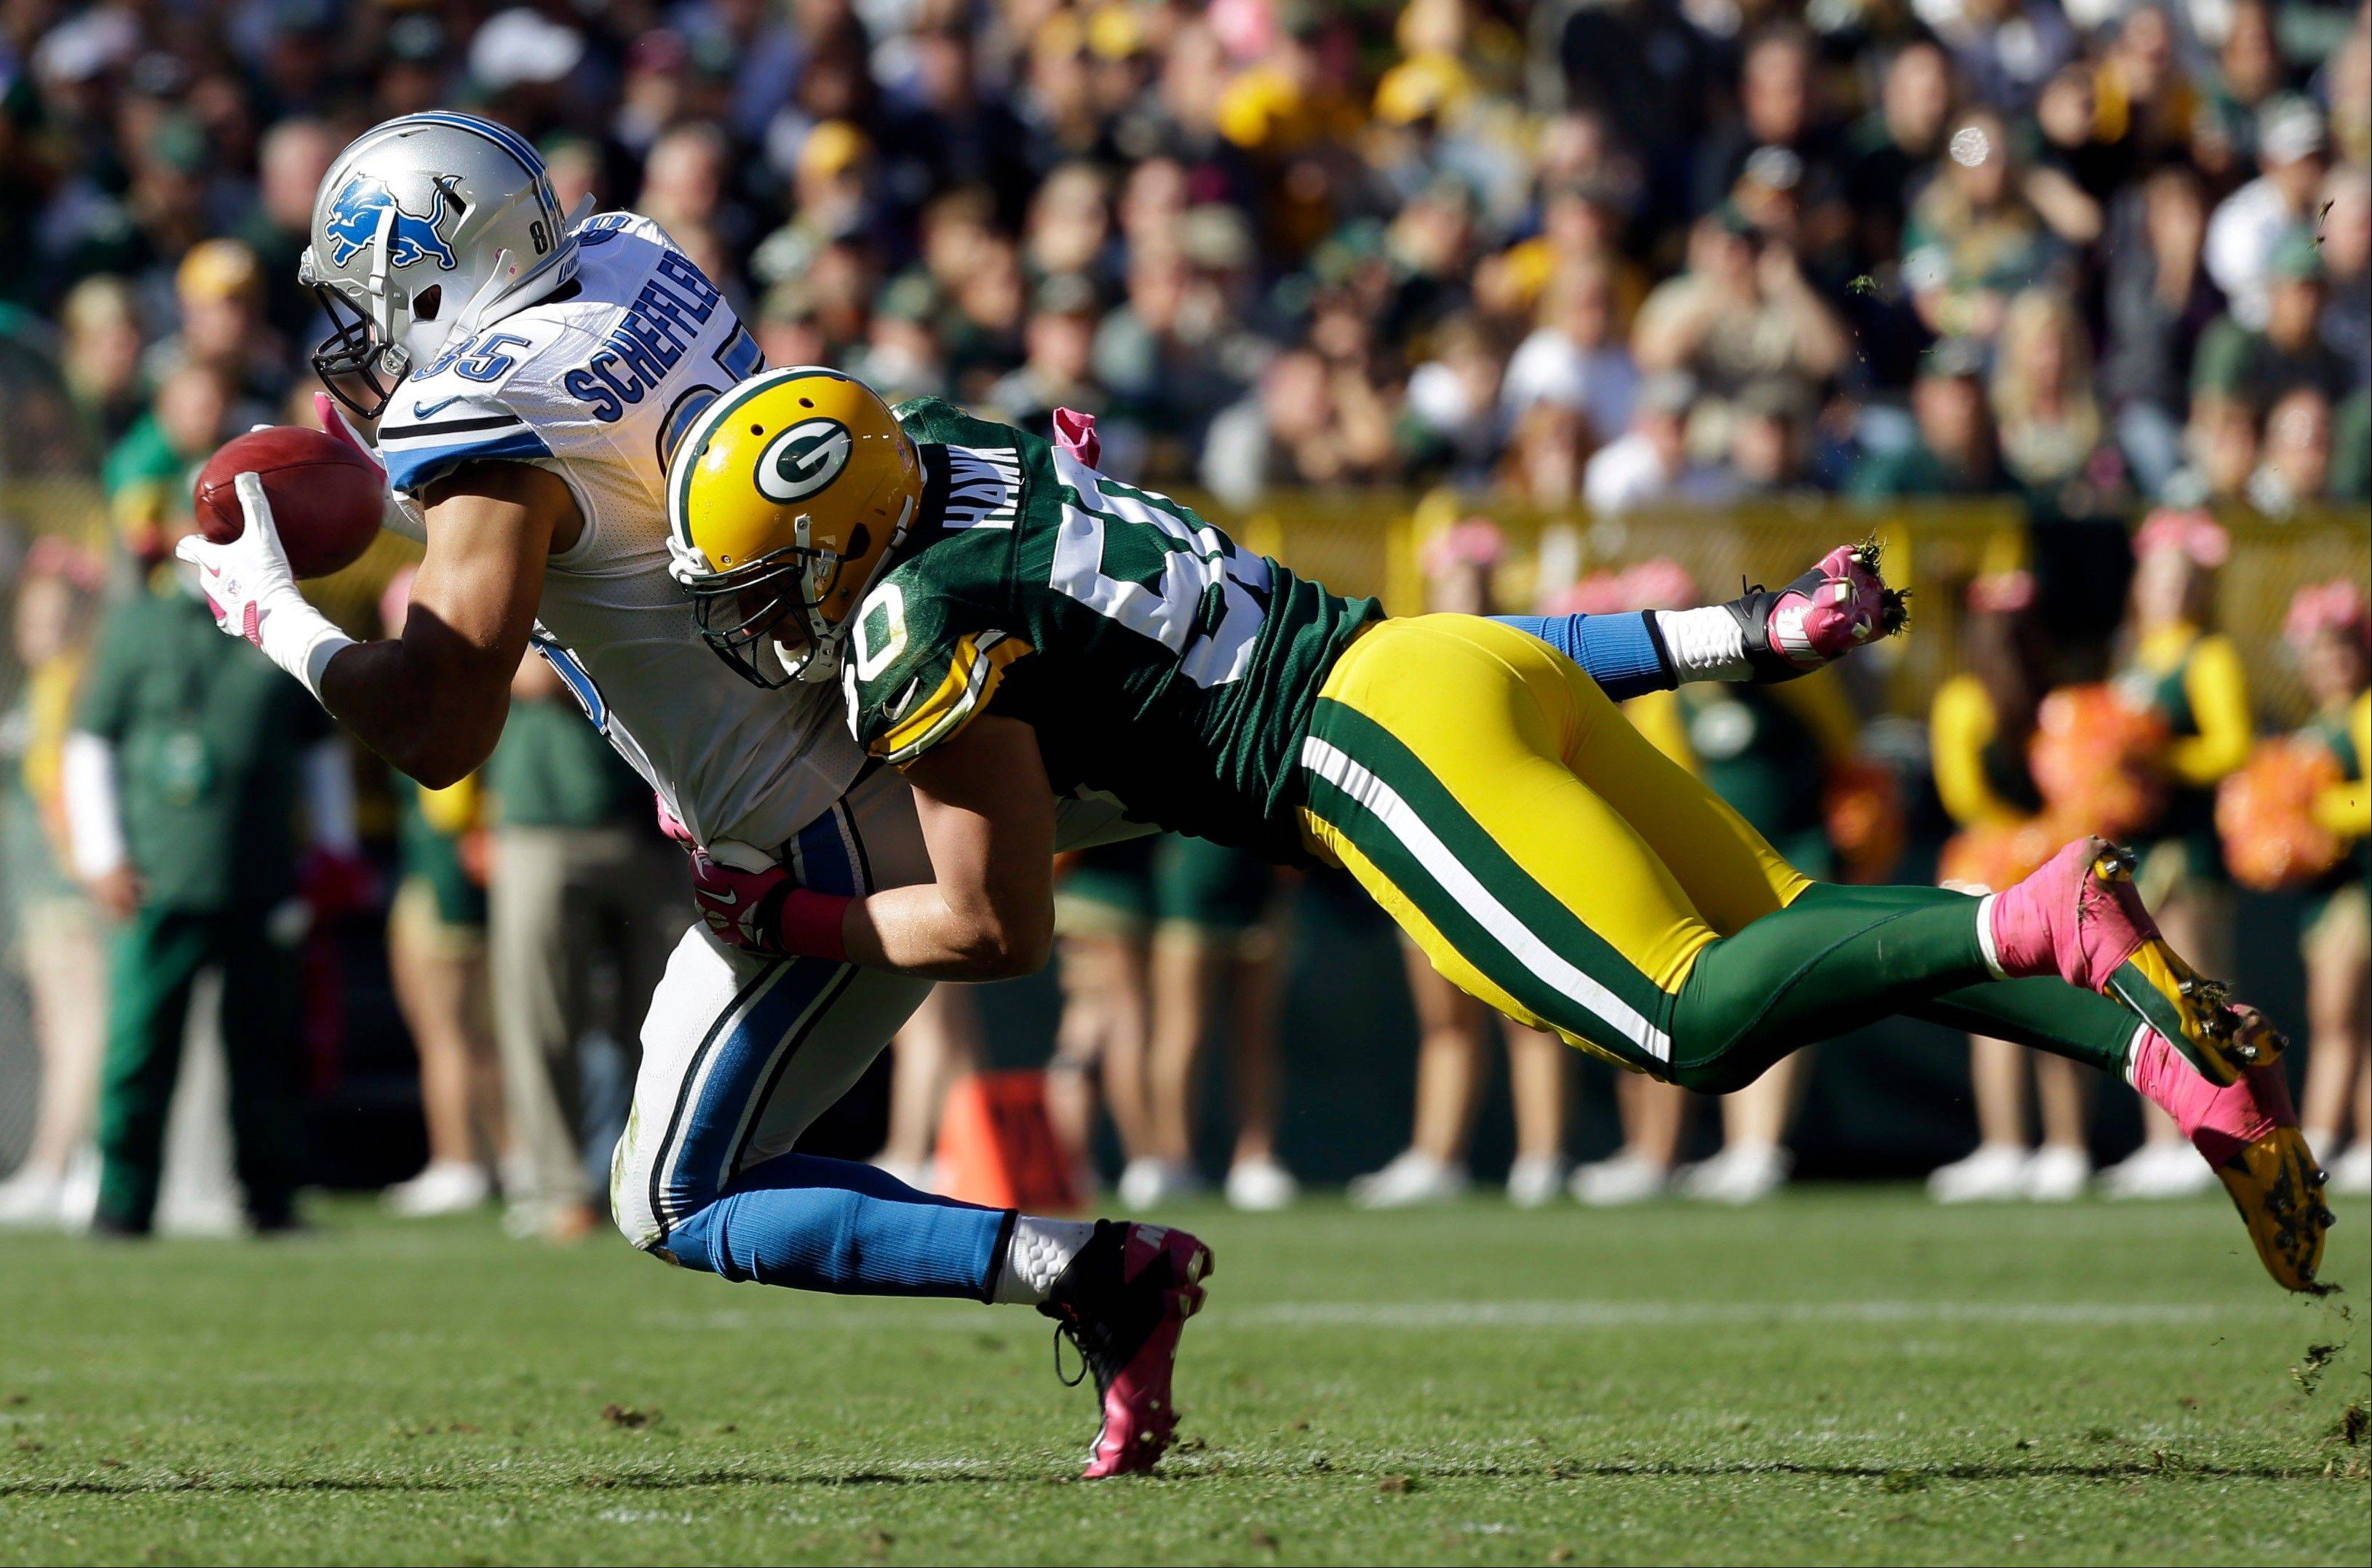 Associated Press Detroit Lions� Tony Scheffler catches a pass in front of Green Bay Packers� A.J. Hawk (50) during the second half of an NFL football game Sunday, Oct. 6, 2013, in Green Bay, Wis. The Packers won 22-9.